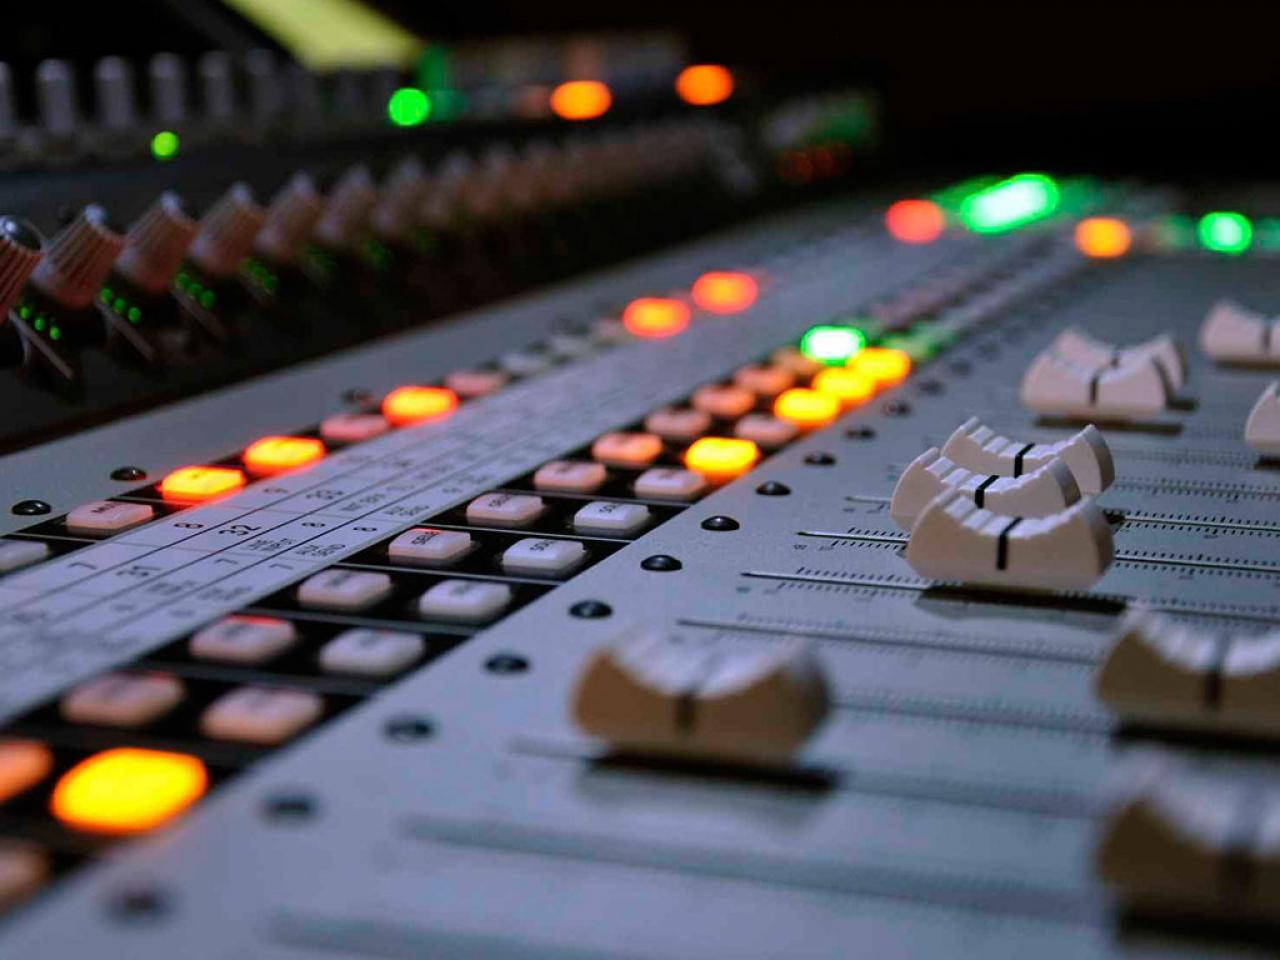 Imagen de AUDIO POSTPRODUCTION, MIX AND EDITING por Movidagrafica